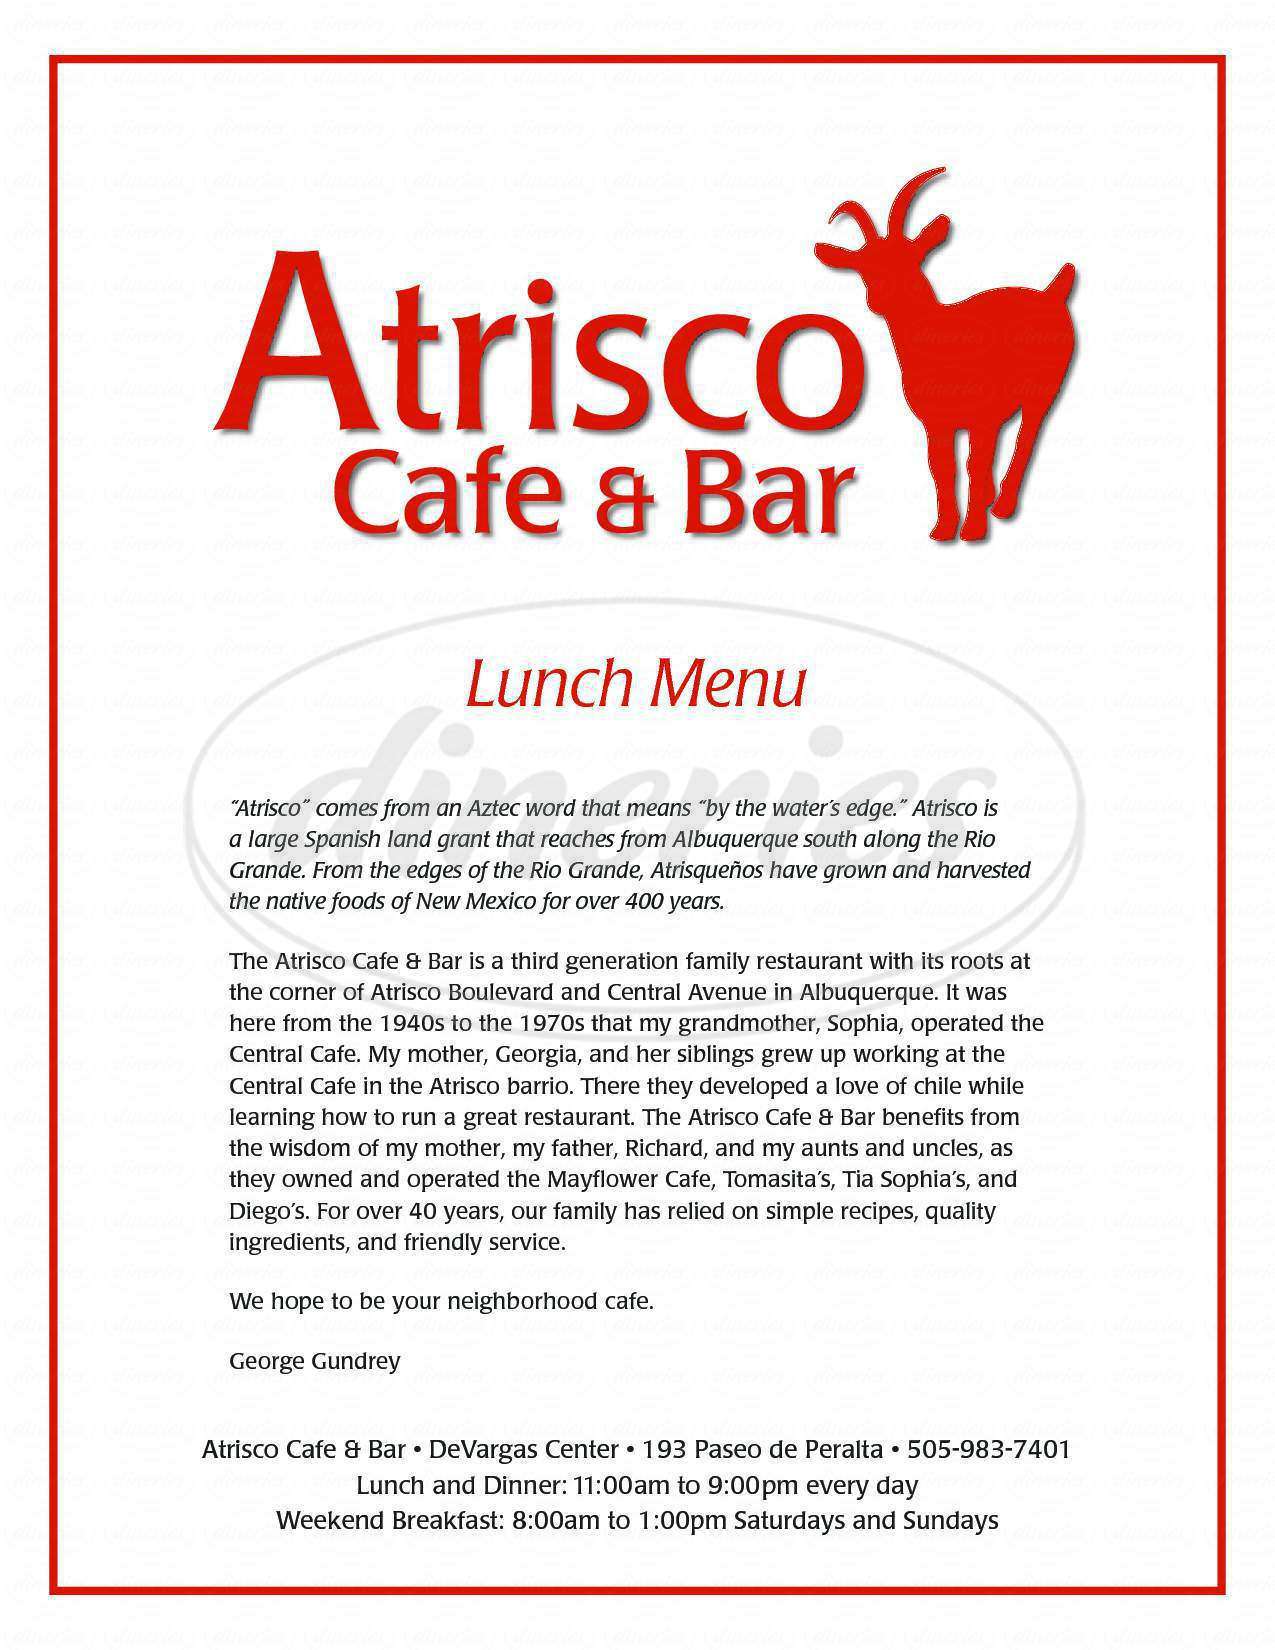 menu for Atrisco Cafe & Bar